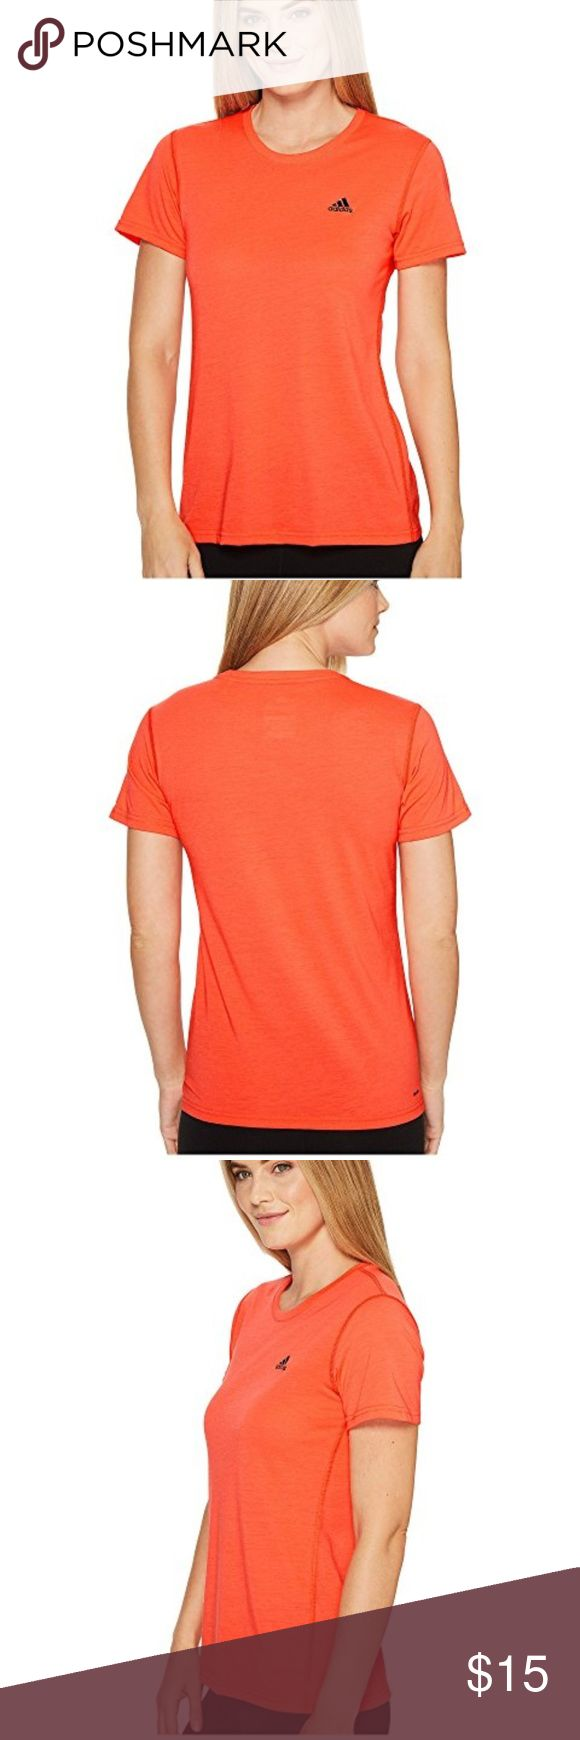 """Adidas Orange Active Workout Short Sleeve T-Shirt Crew neckline, loose fitting. Orange with gray logo on upper left corner of chest. Great for workout, hiking, running or just walking around town.   36"""" Chest, 26"""" Length  100% Polyester  This item is gently used with minor signs of wear adidas Tops Tees - Short Sleeve"""